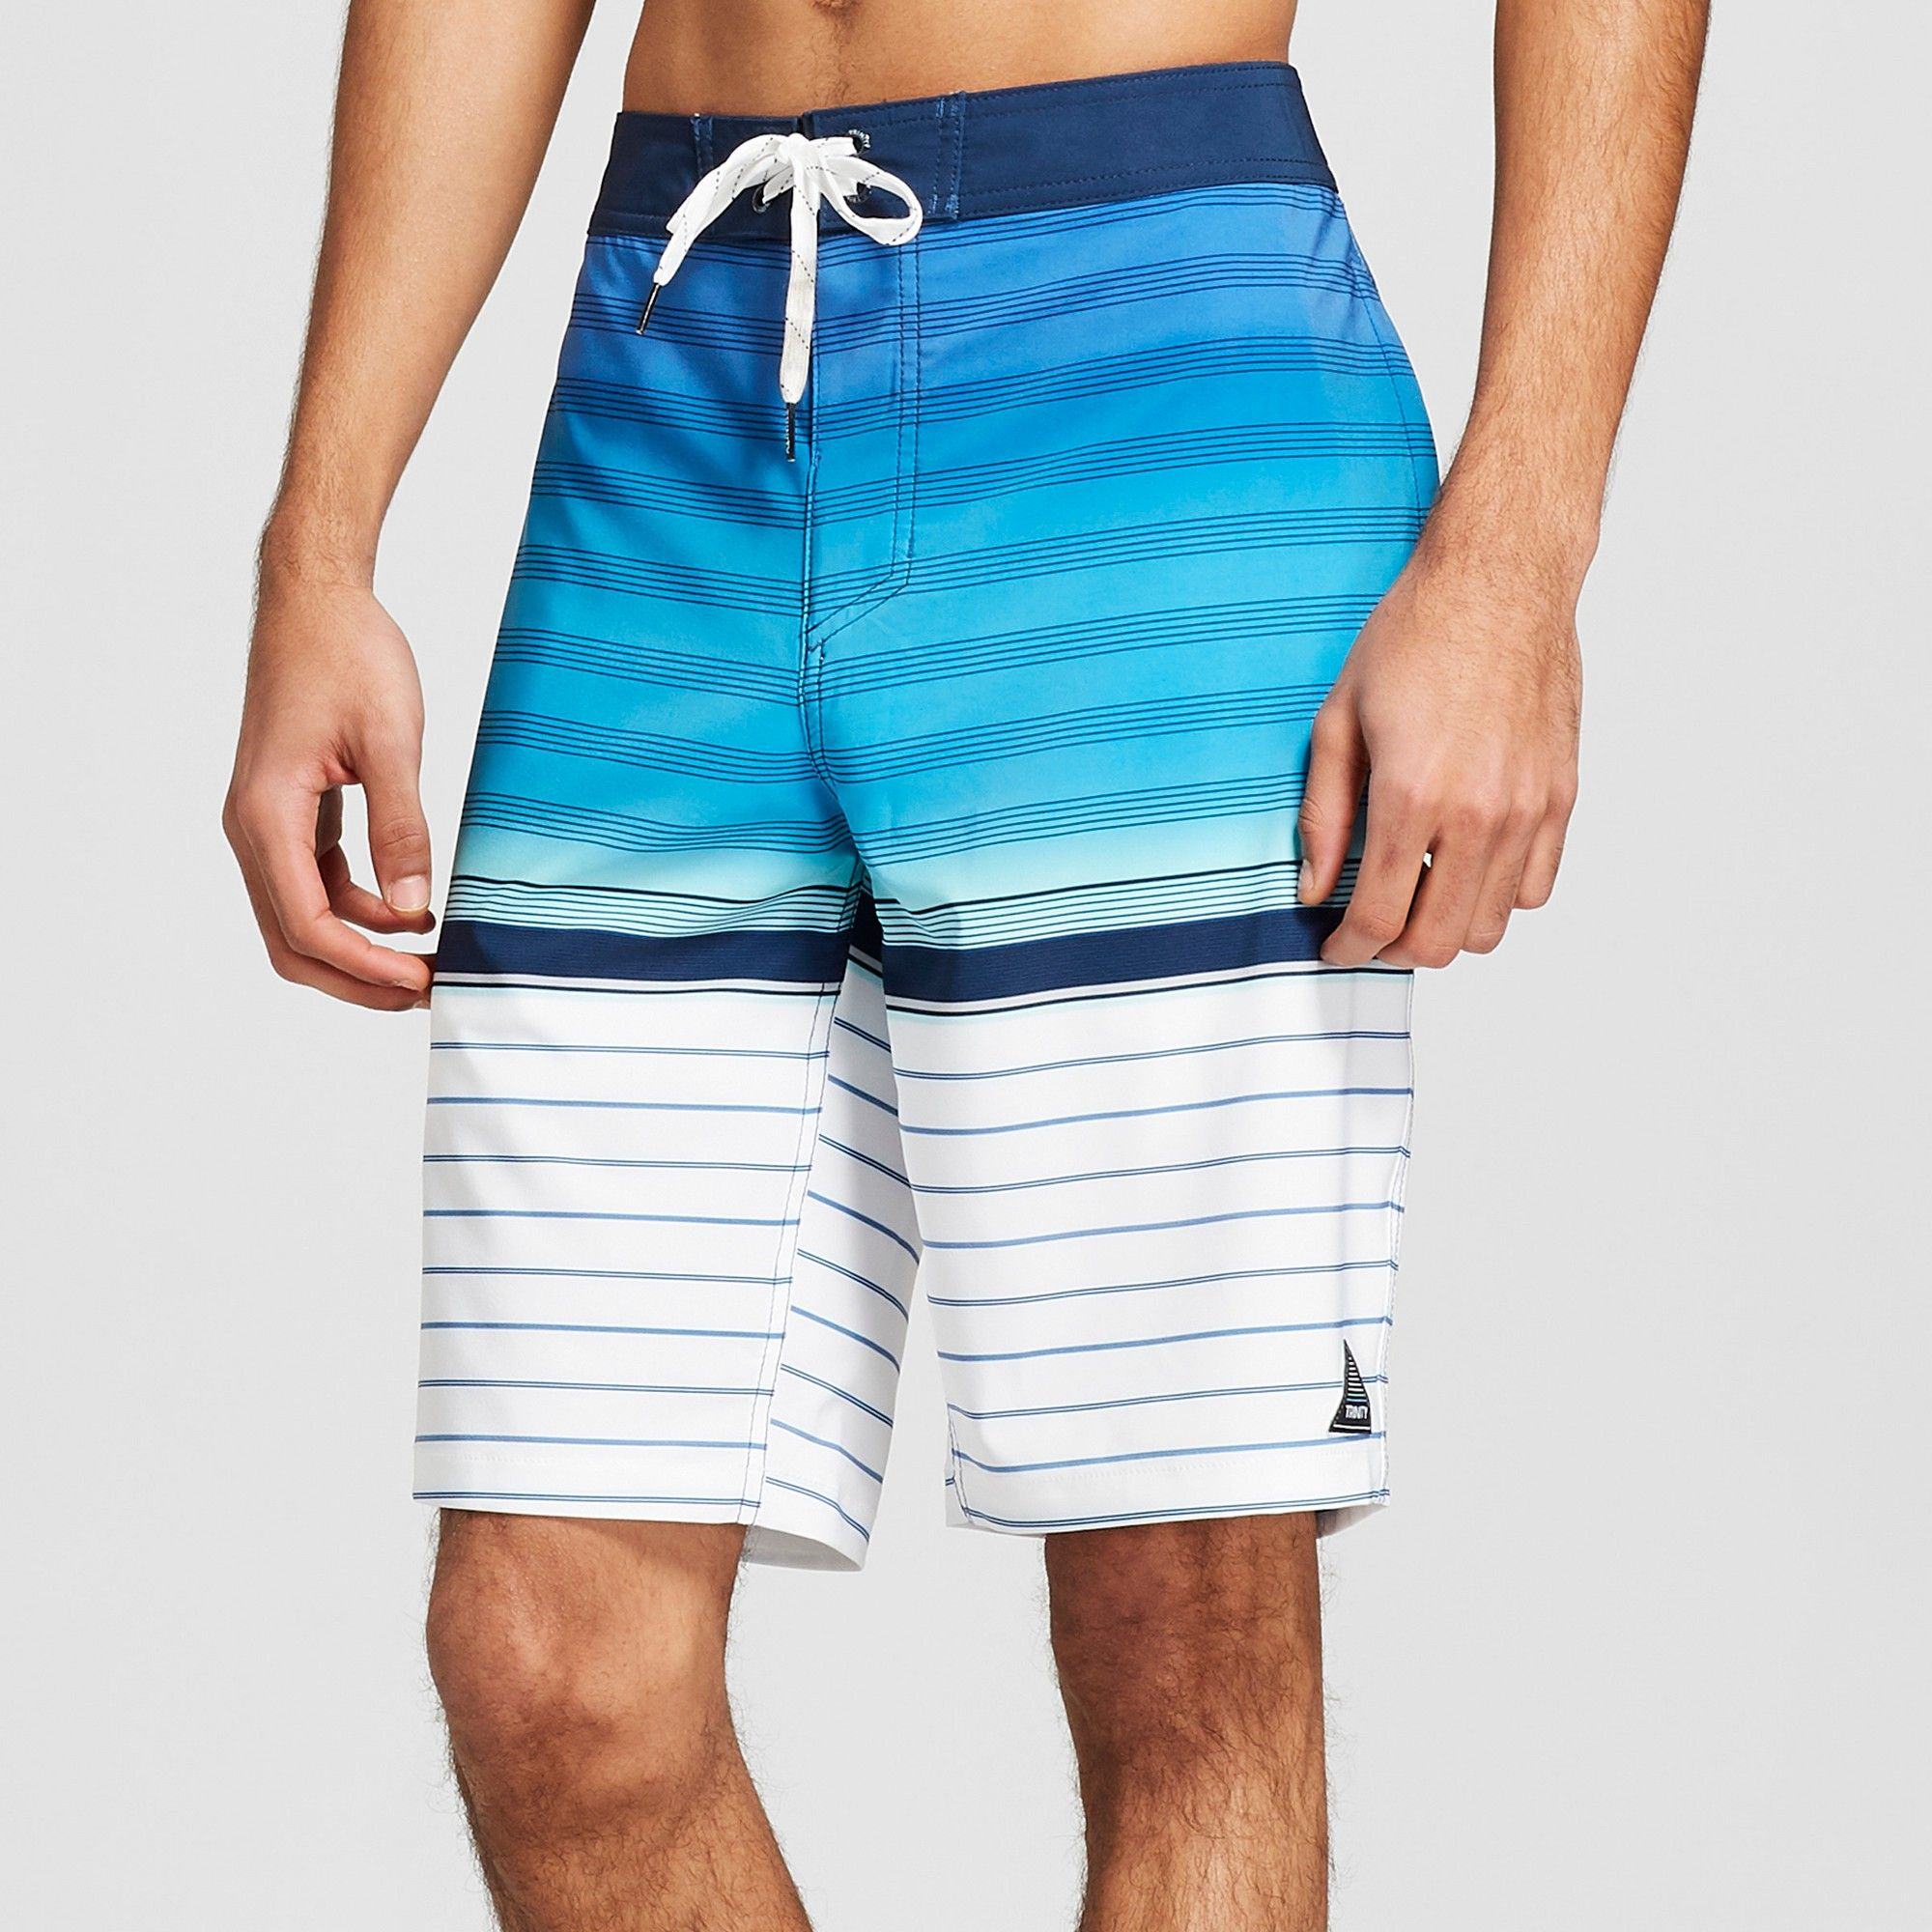 d74cc8d545 Men's Striped 10 Logical Board Shorts - Trinity Blue 32 | Products ...